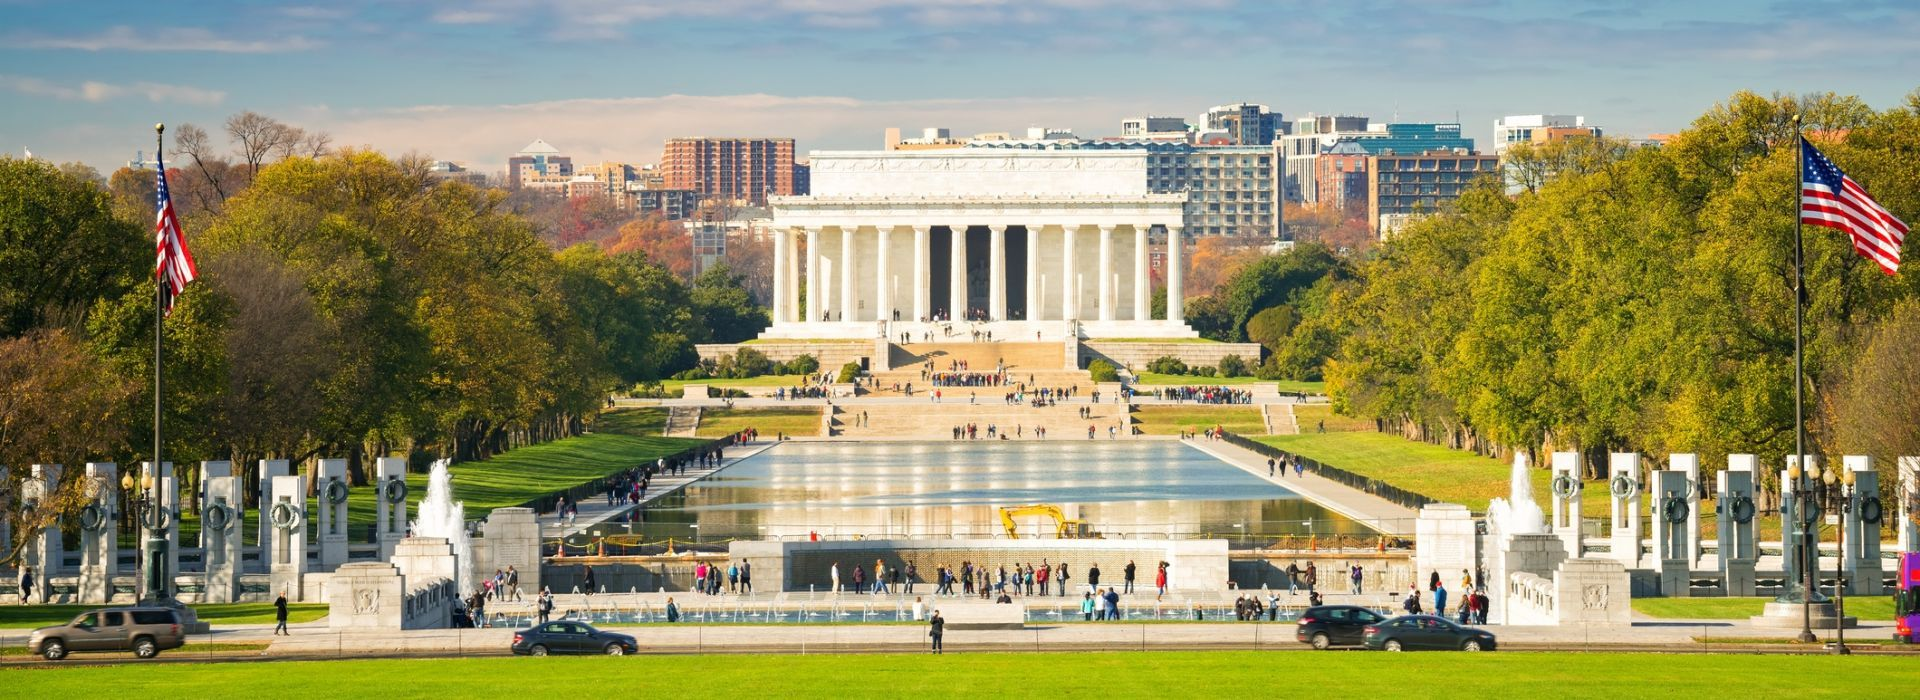 Art and architecture Tours in Washington D.C.